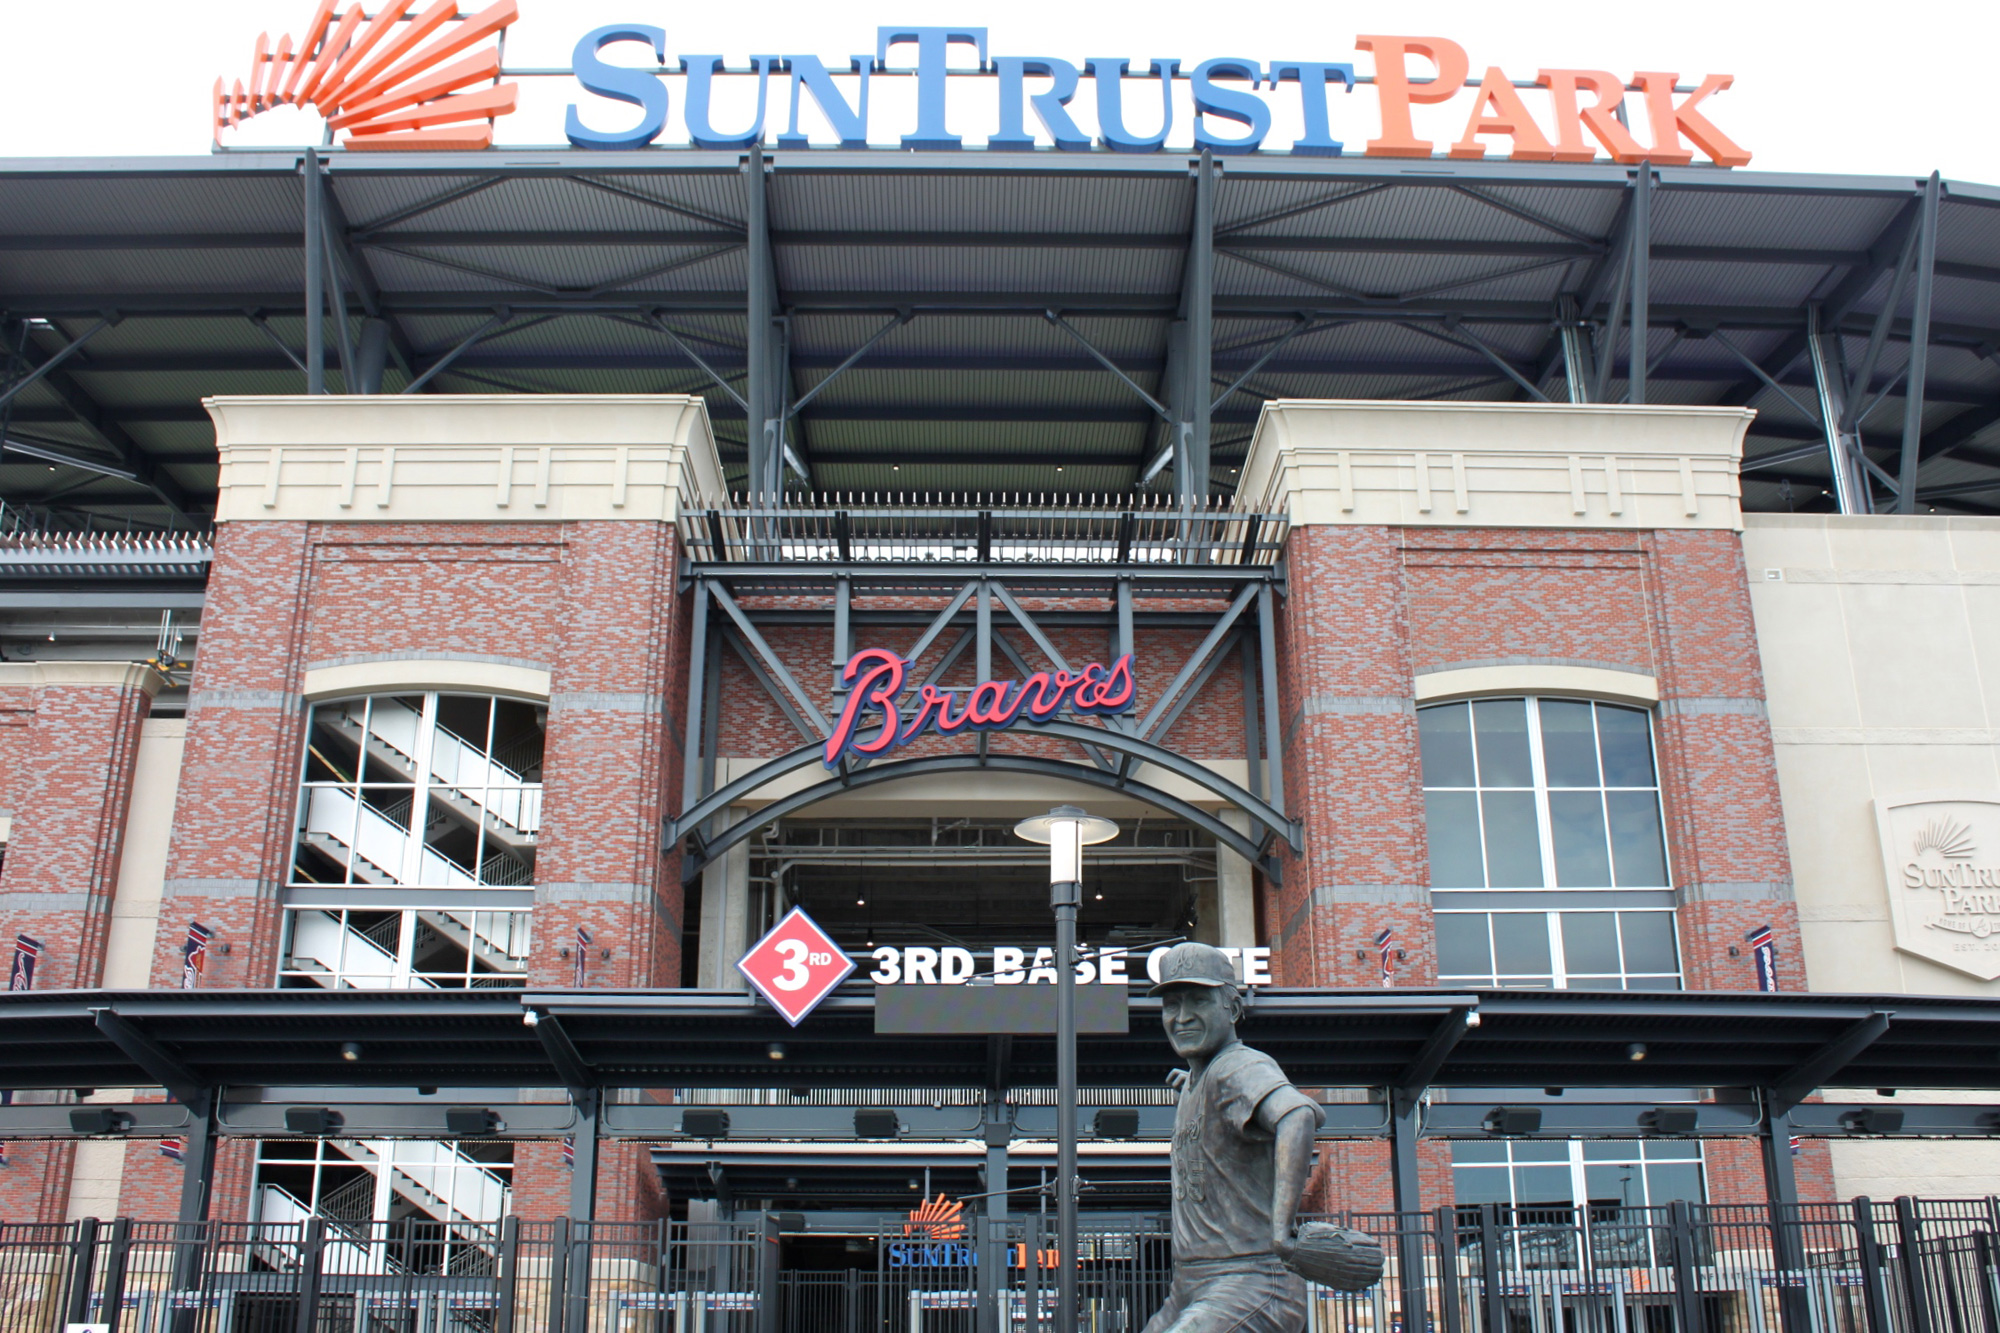 SunTrust Park, home of the Atlanta Braves. Photo by Caroline Eubanks